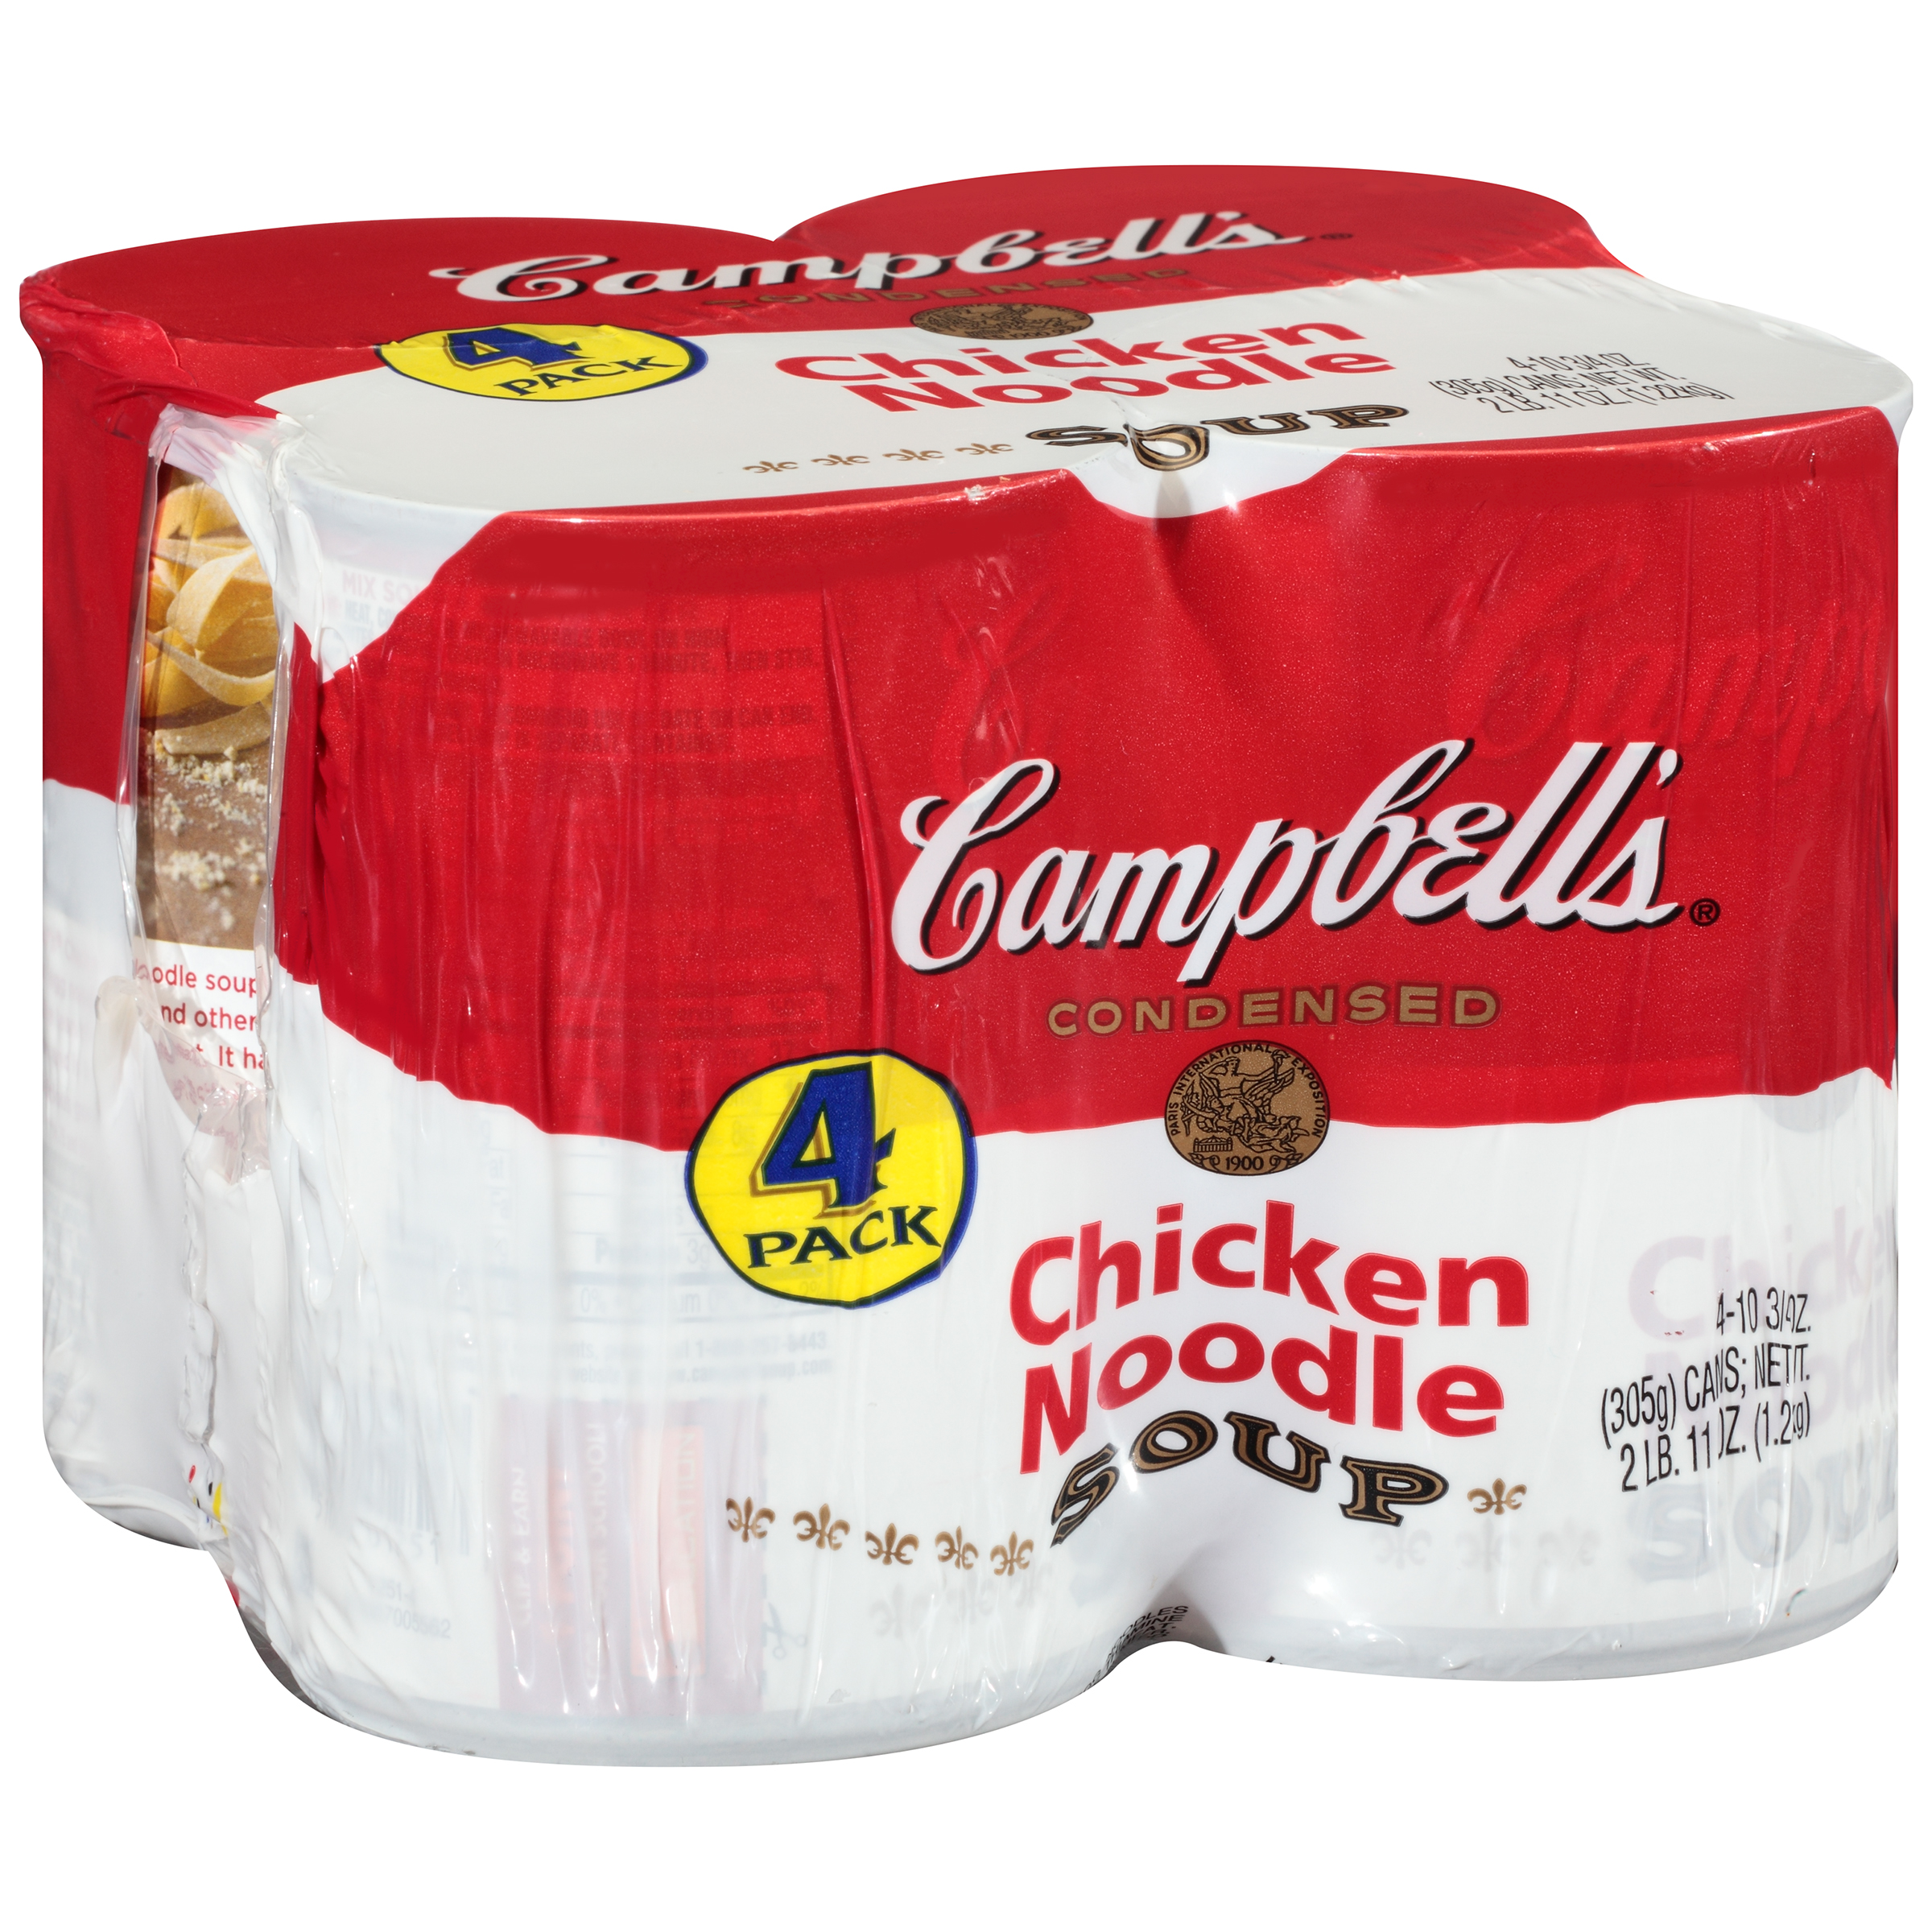 Campbell's Chicken Noodle Soup 10.75oz 4 pack by Campbell Soup Company